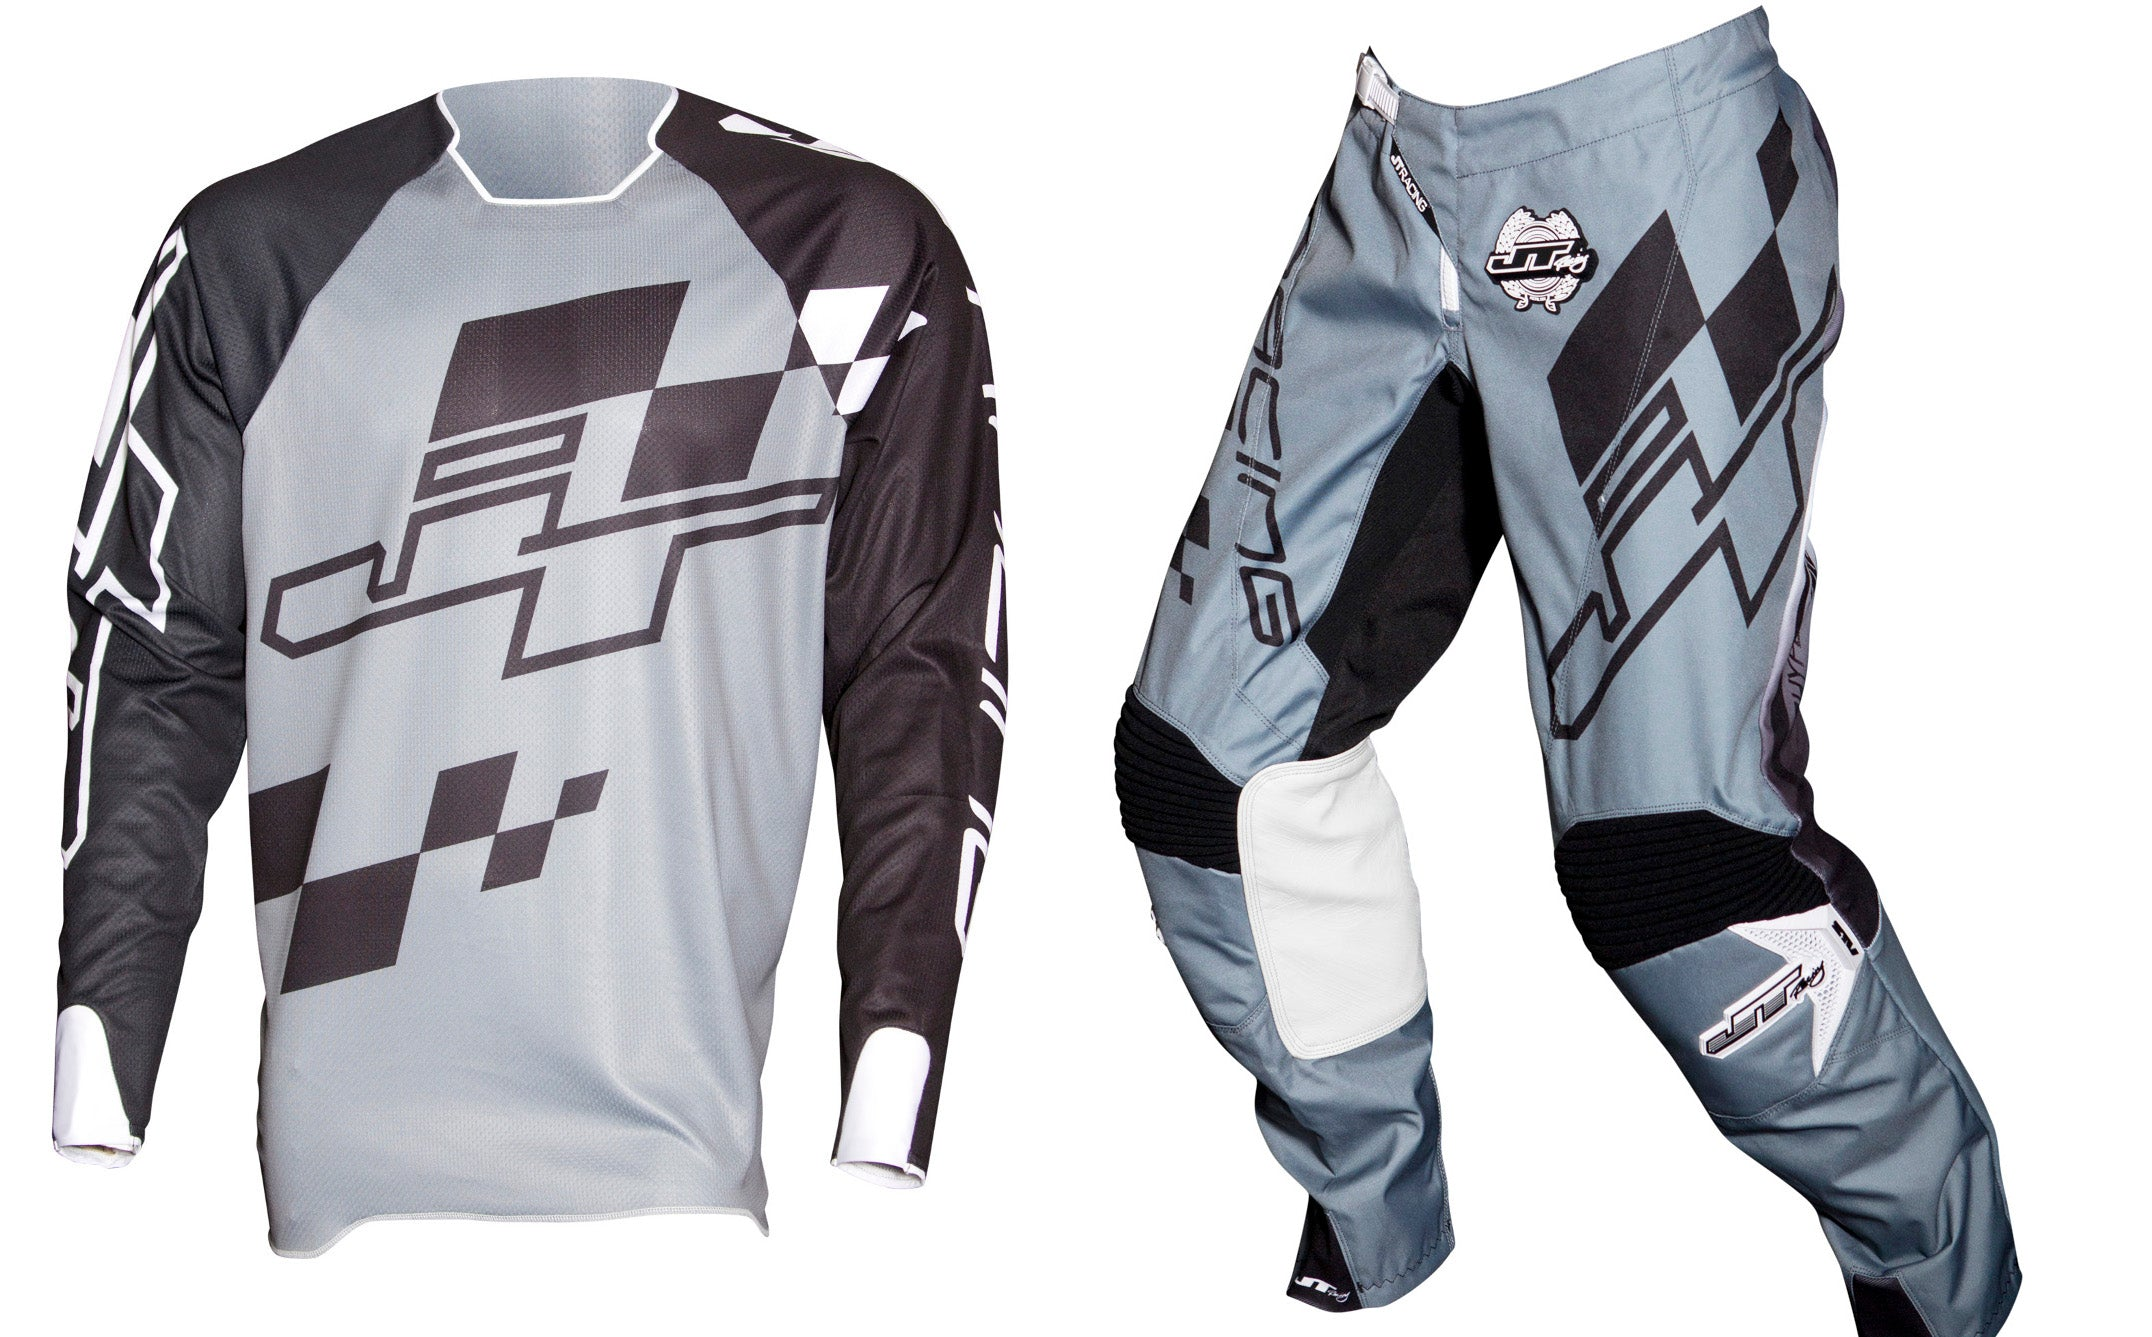 JT RACING USA-2018 Flex-ExBox Jersey, Grey/Black